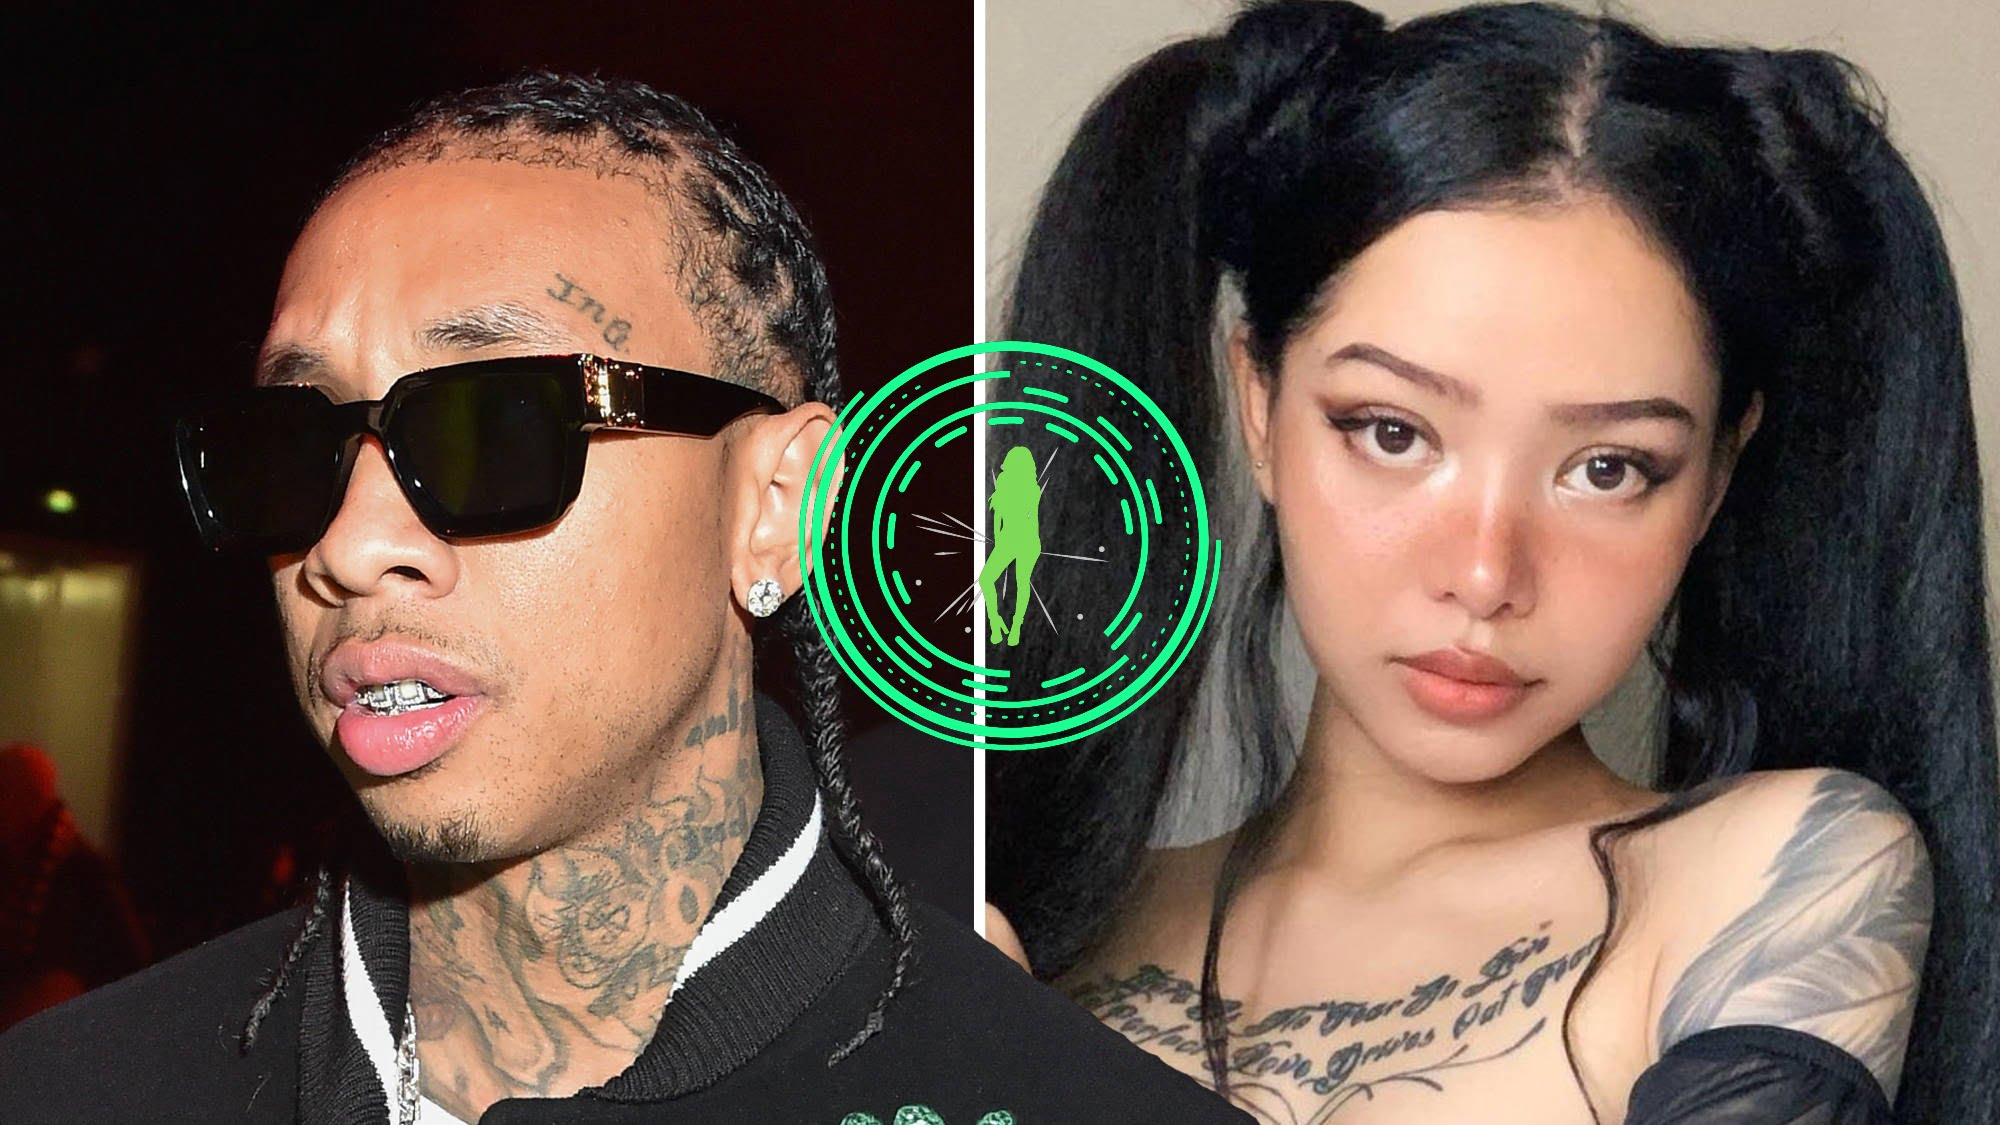 Do Bella Poarch and Tyga have relationships after TikTok videos 1